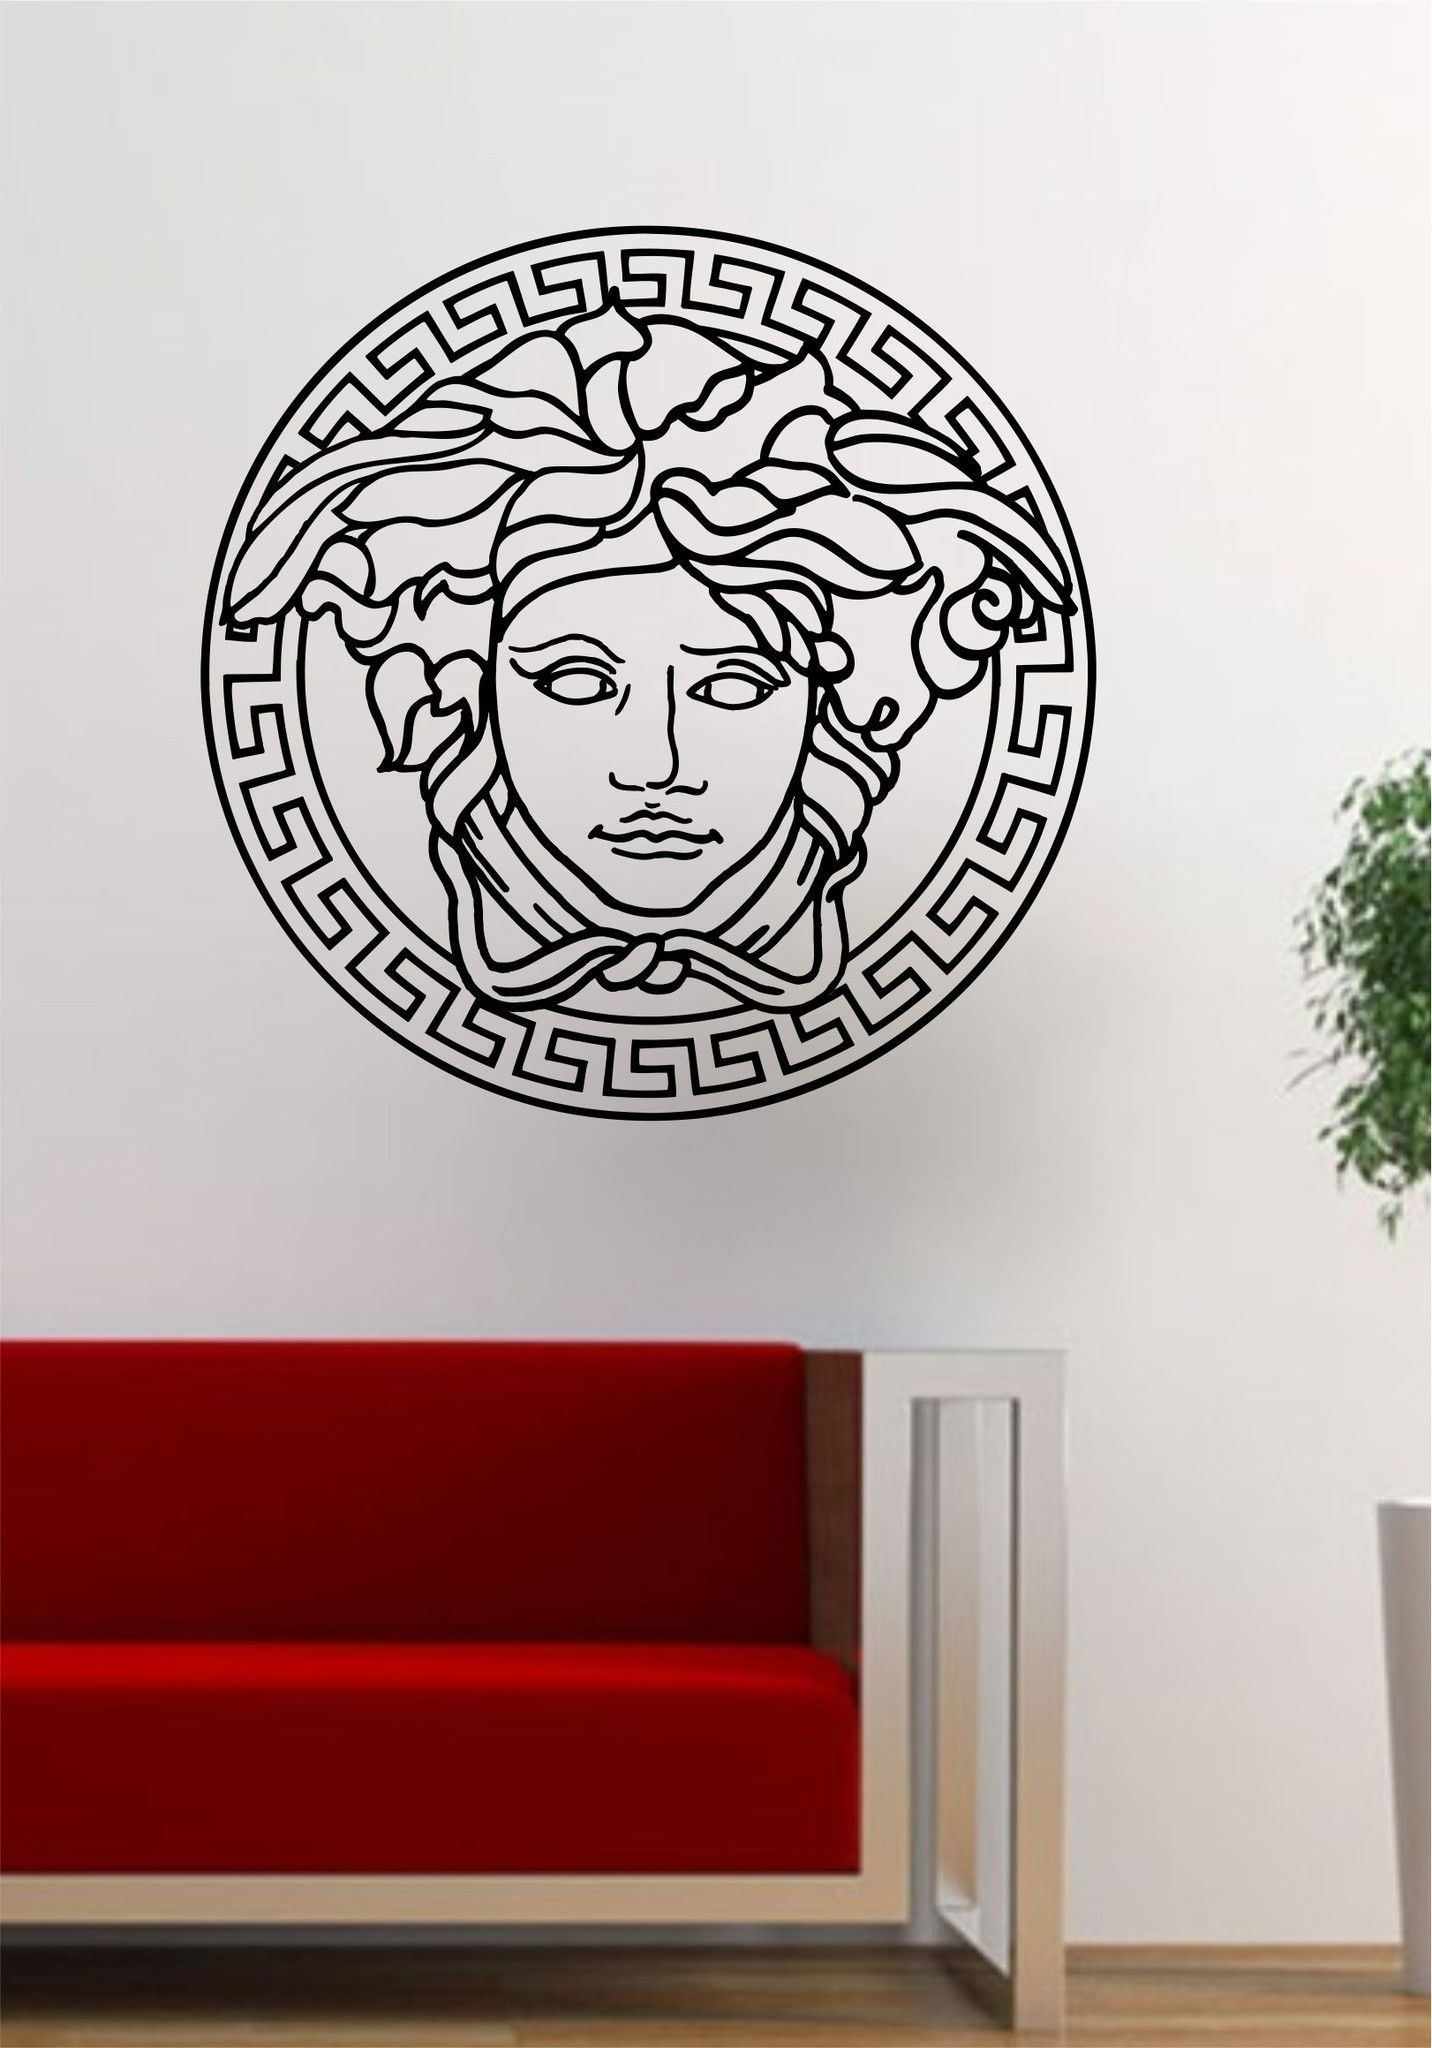 Versace Logo Medusa Decal Sticker Wall Vinyl Decor Art (View 9 of 15)